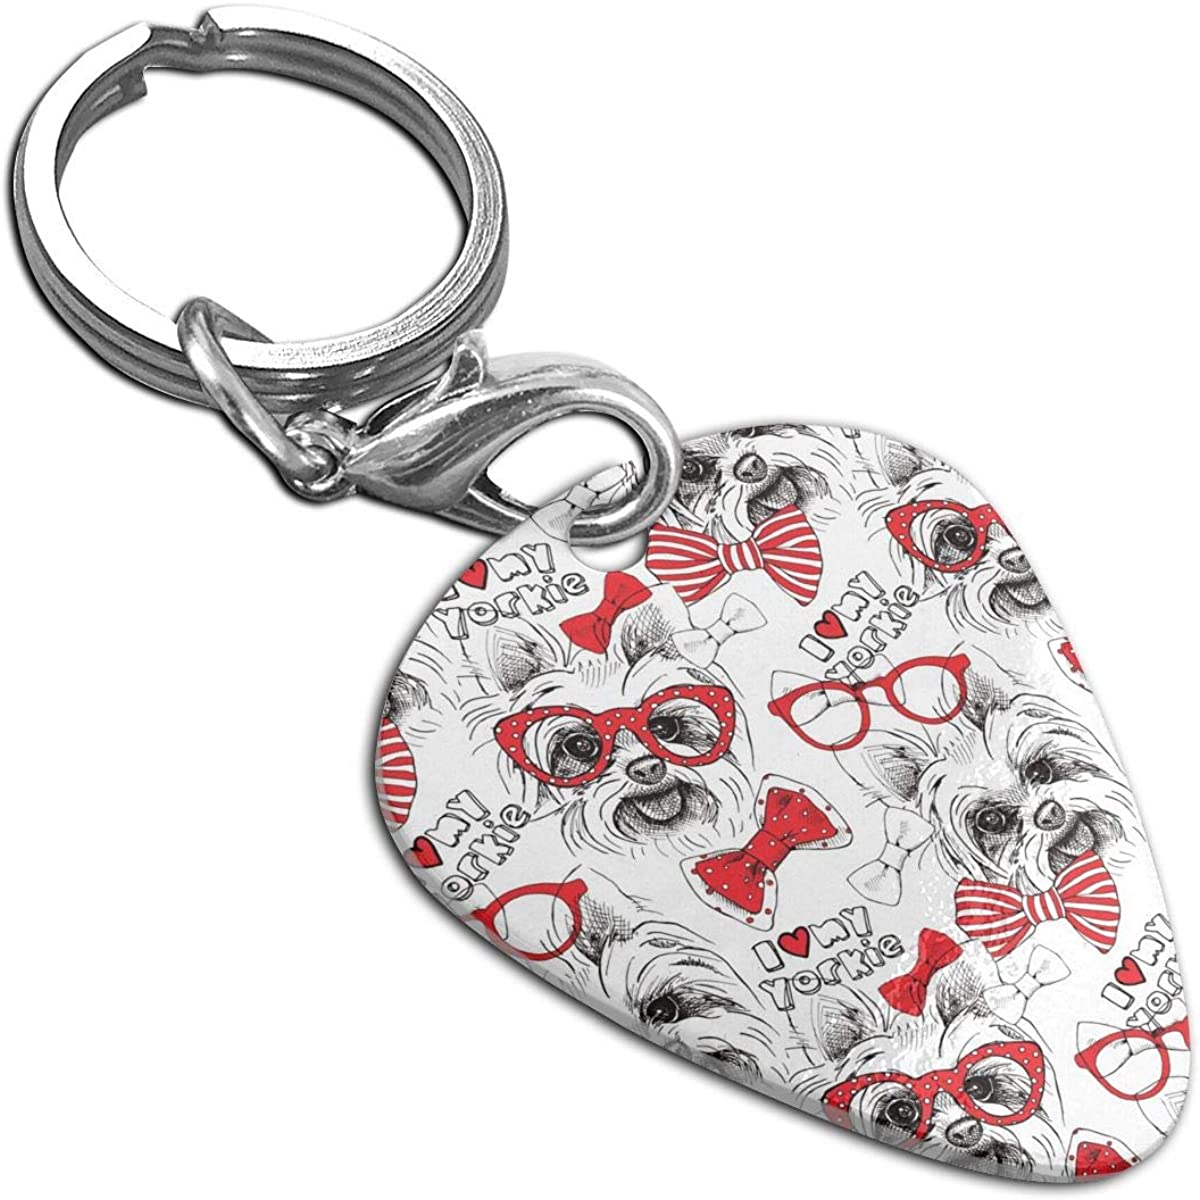 A Dog York Bows Glasses Tie Custom Guitar Pick Pendant Necklace Keychain